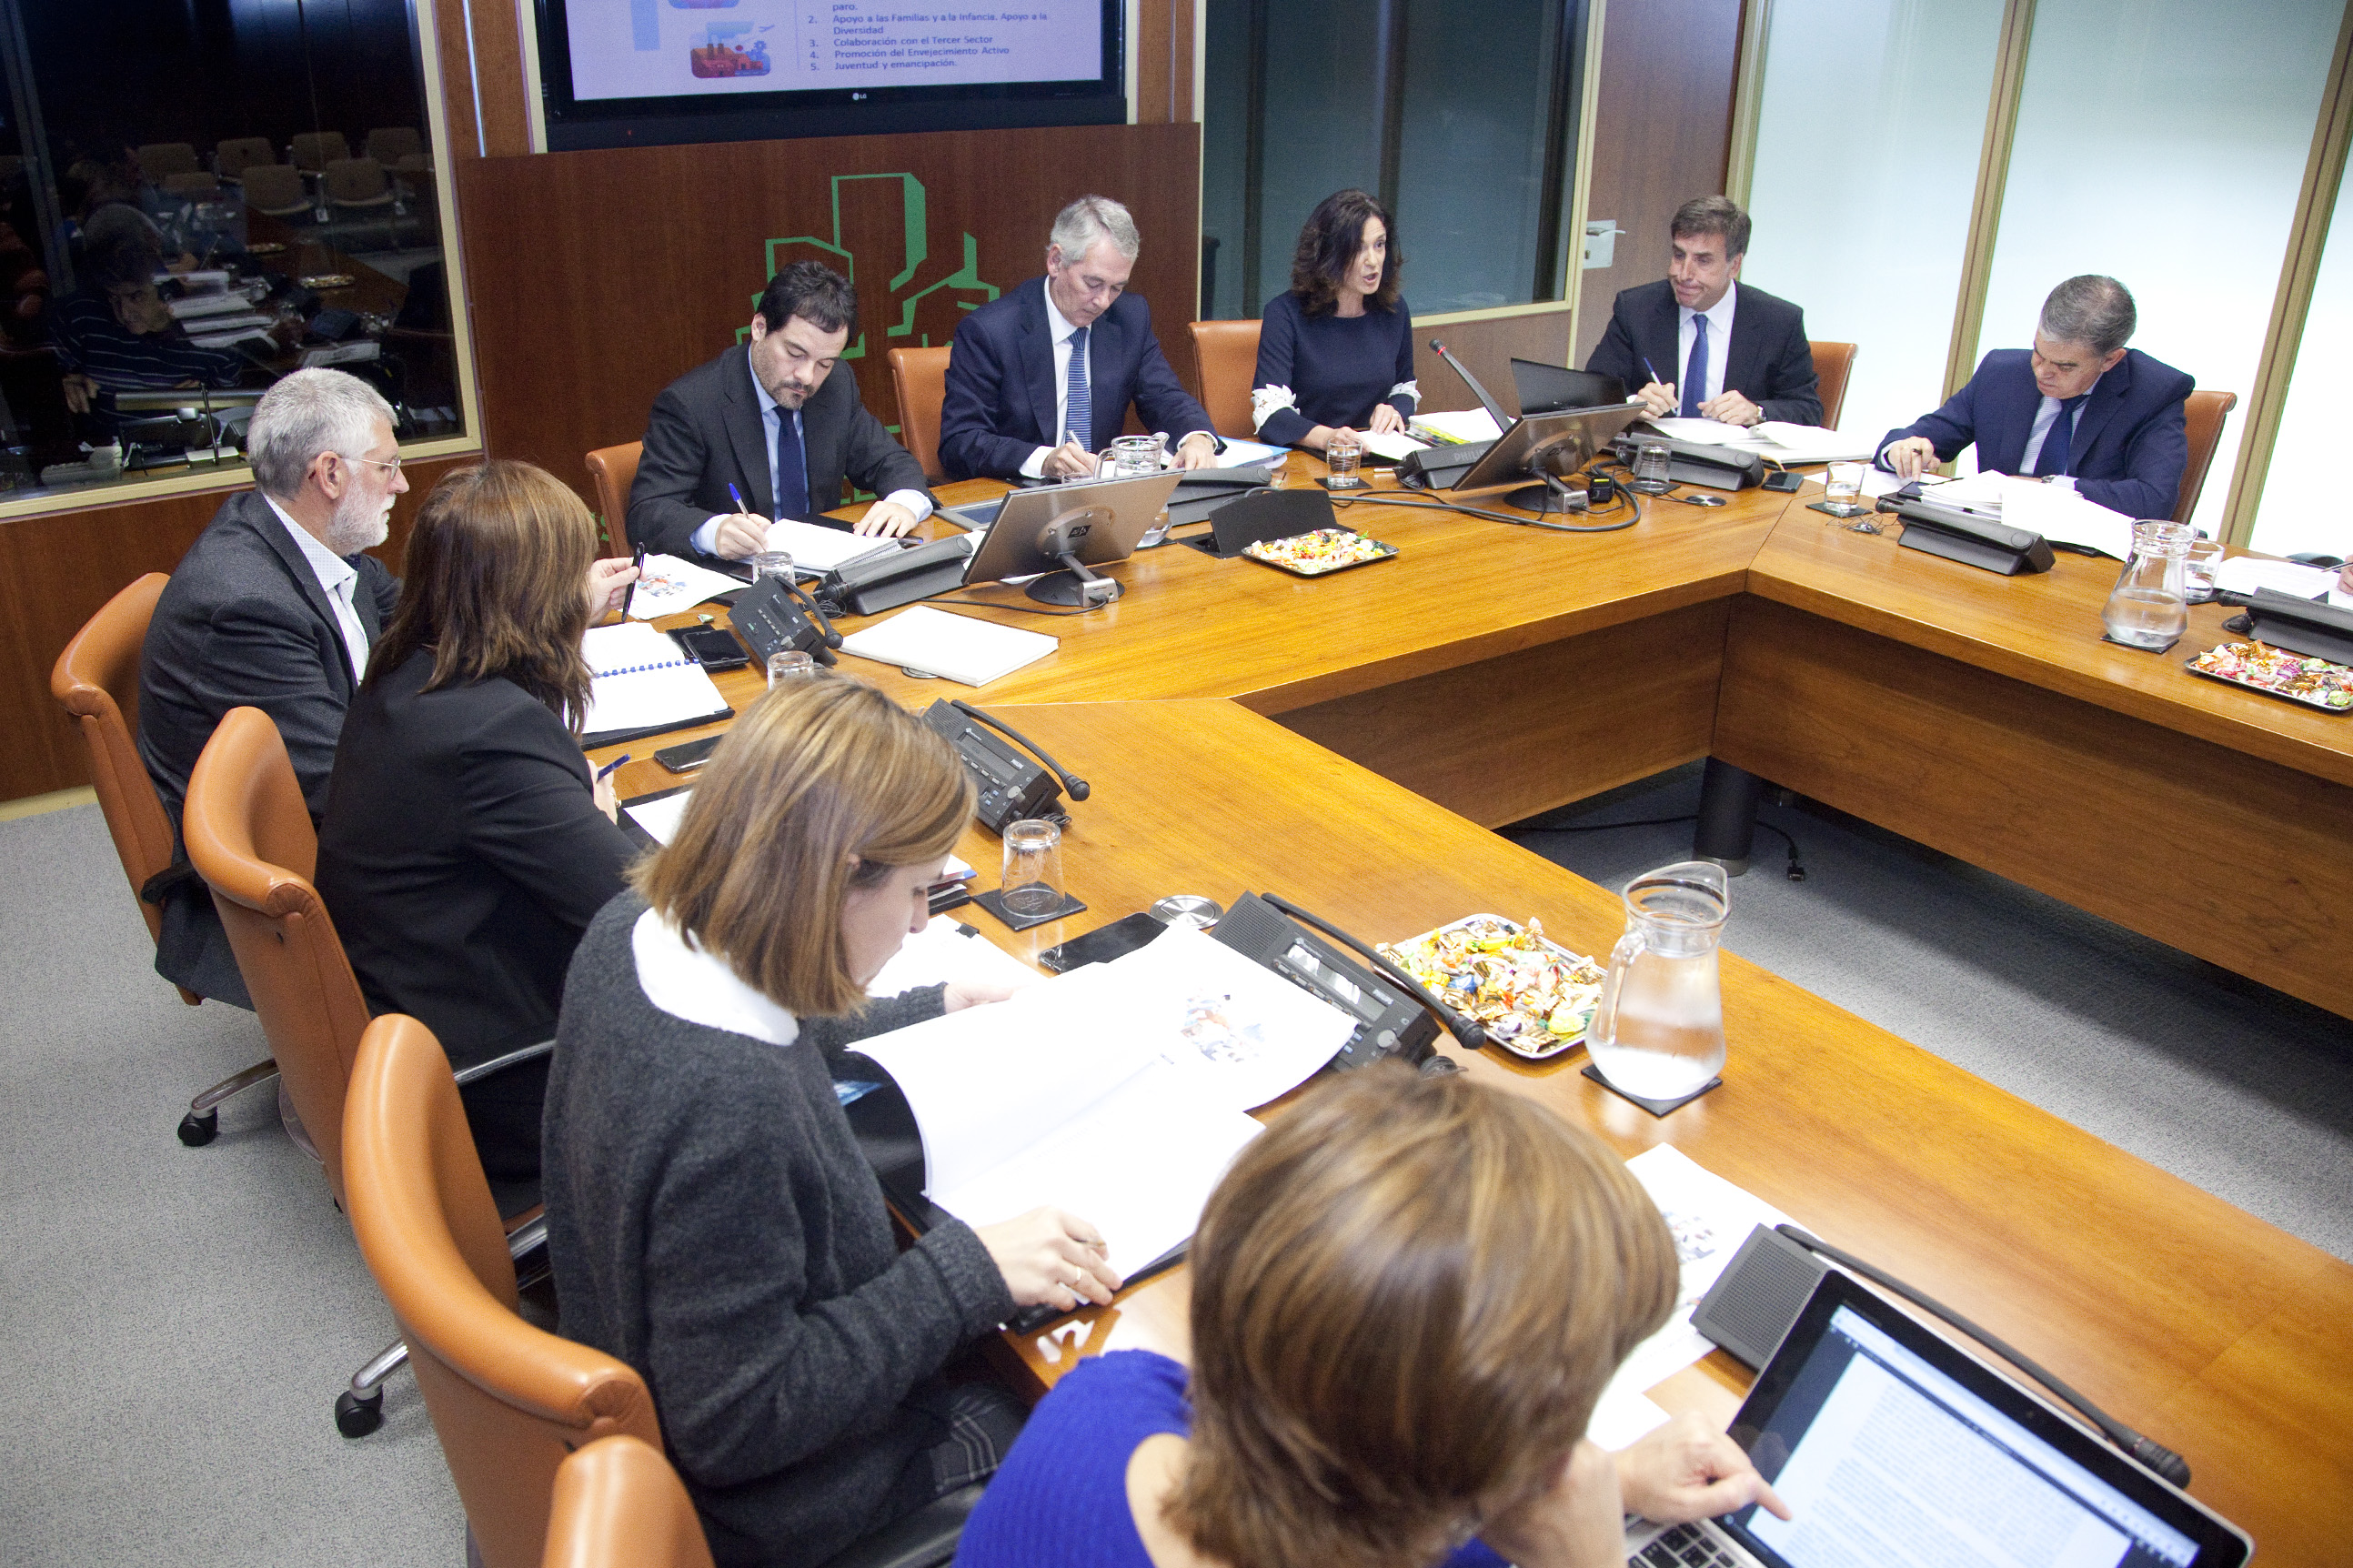 Minister Beatriz Artolazabal presents a budget project of 1,005.6 million euros focused on employment, family, social cohesion, elderly and youth